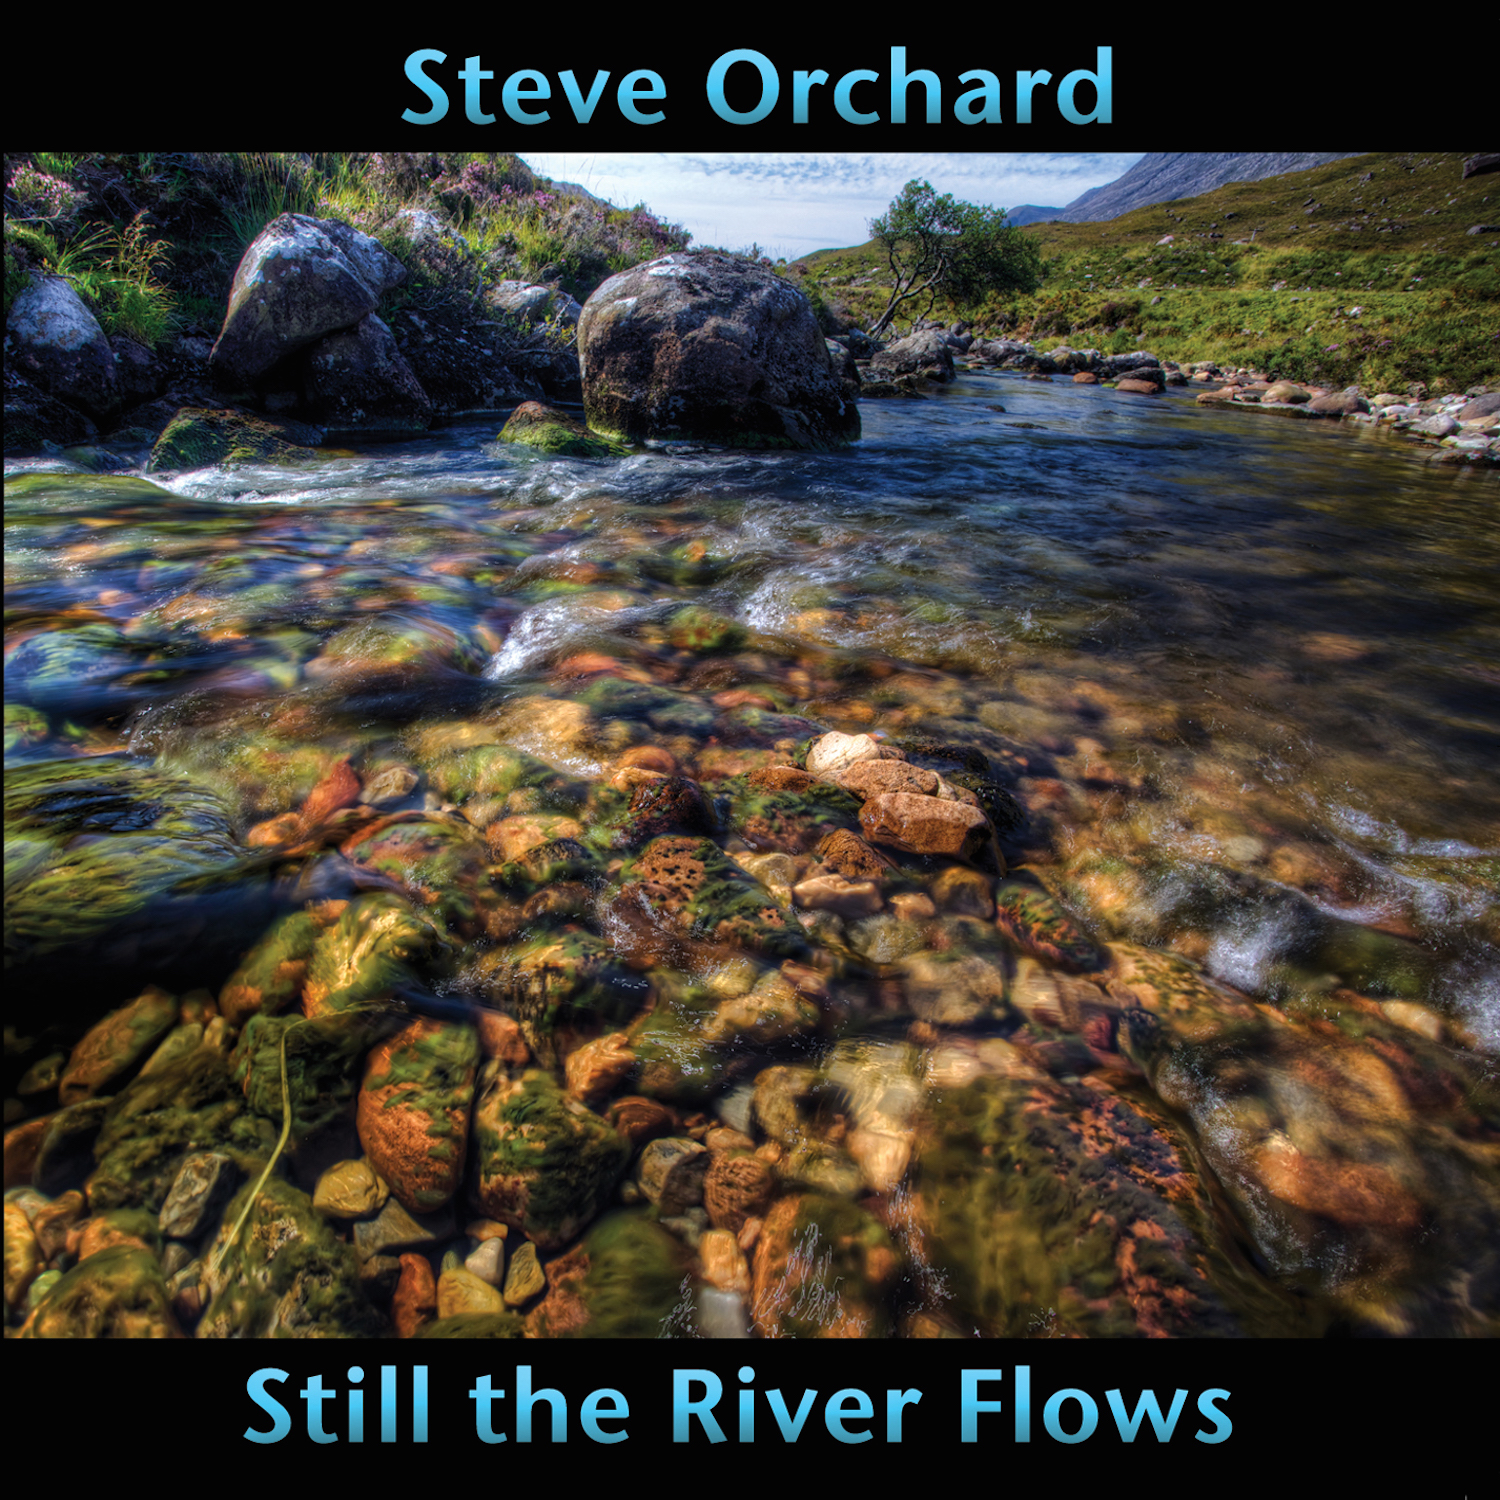 Steve Orchard - Still the River Flows 1500